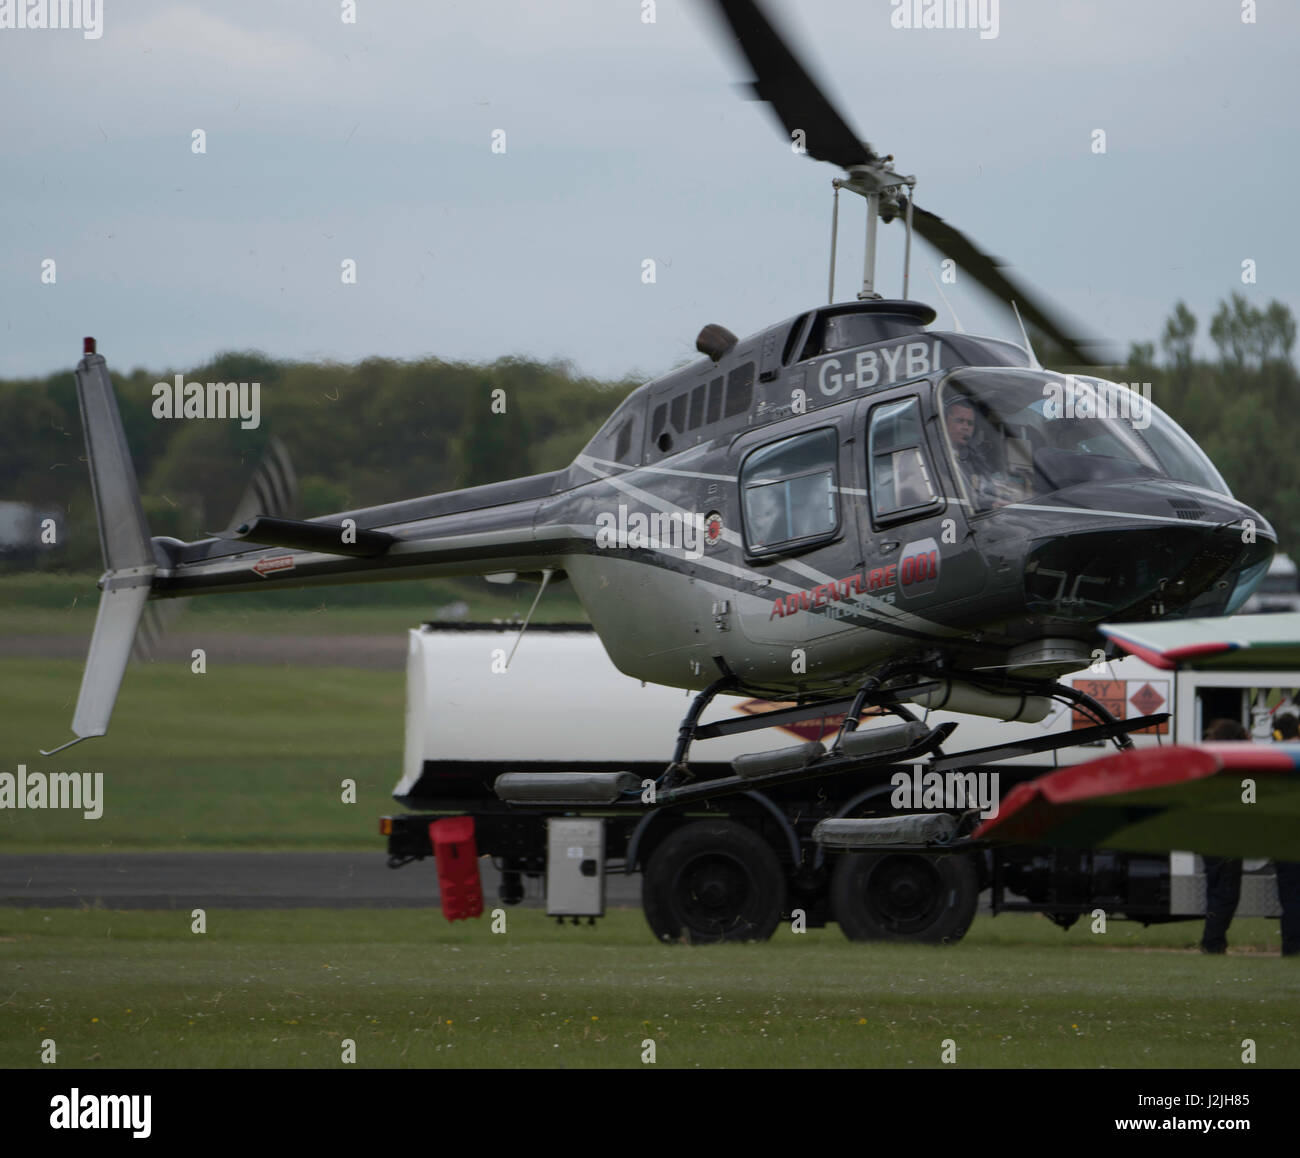 Bell 206B Jet Ranger III, helicopter takes off at North Weald Airfield - Stock Image